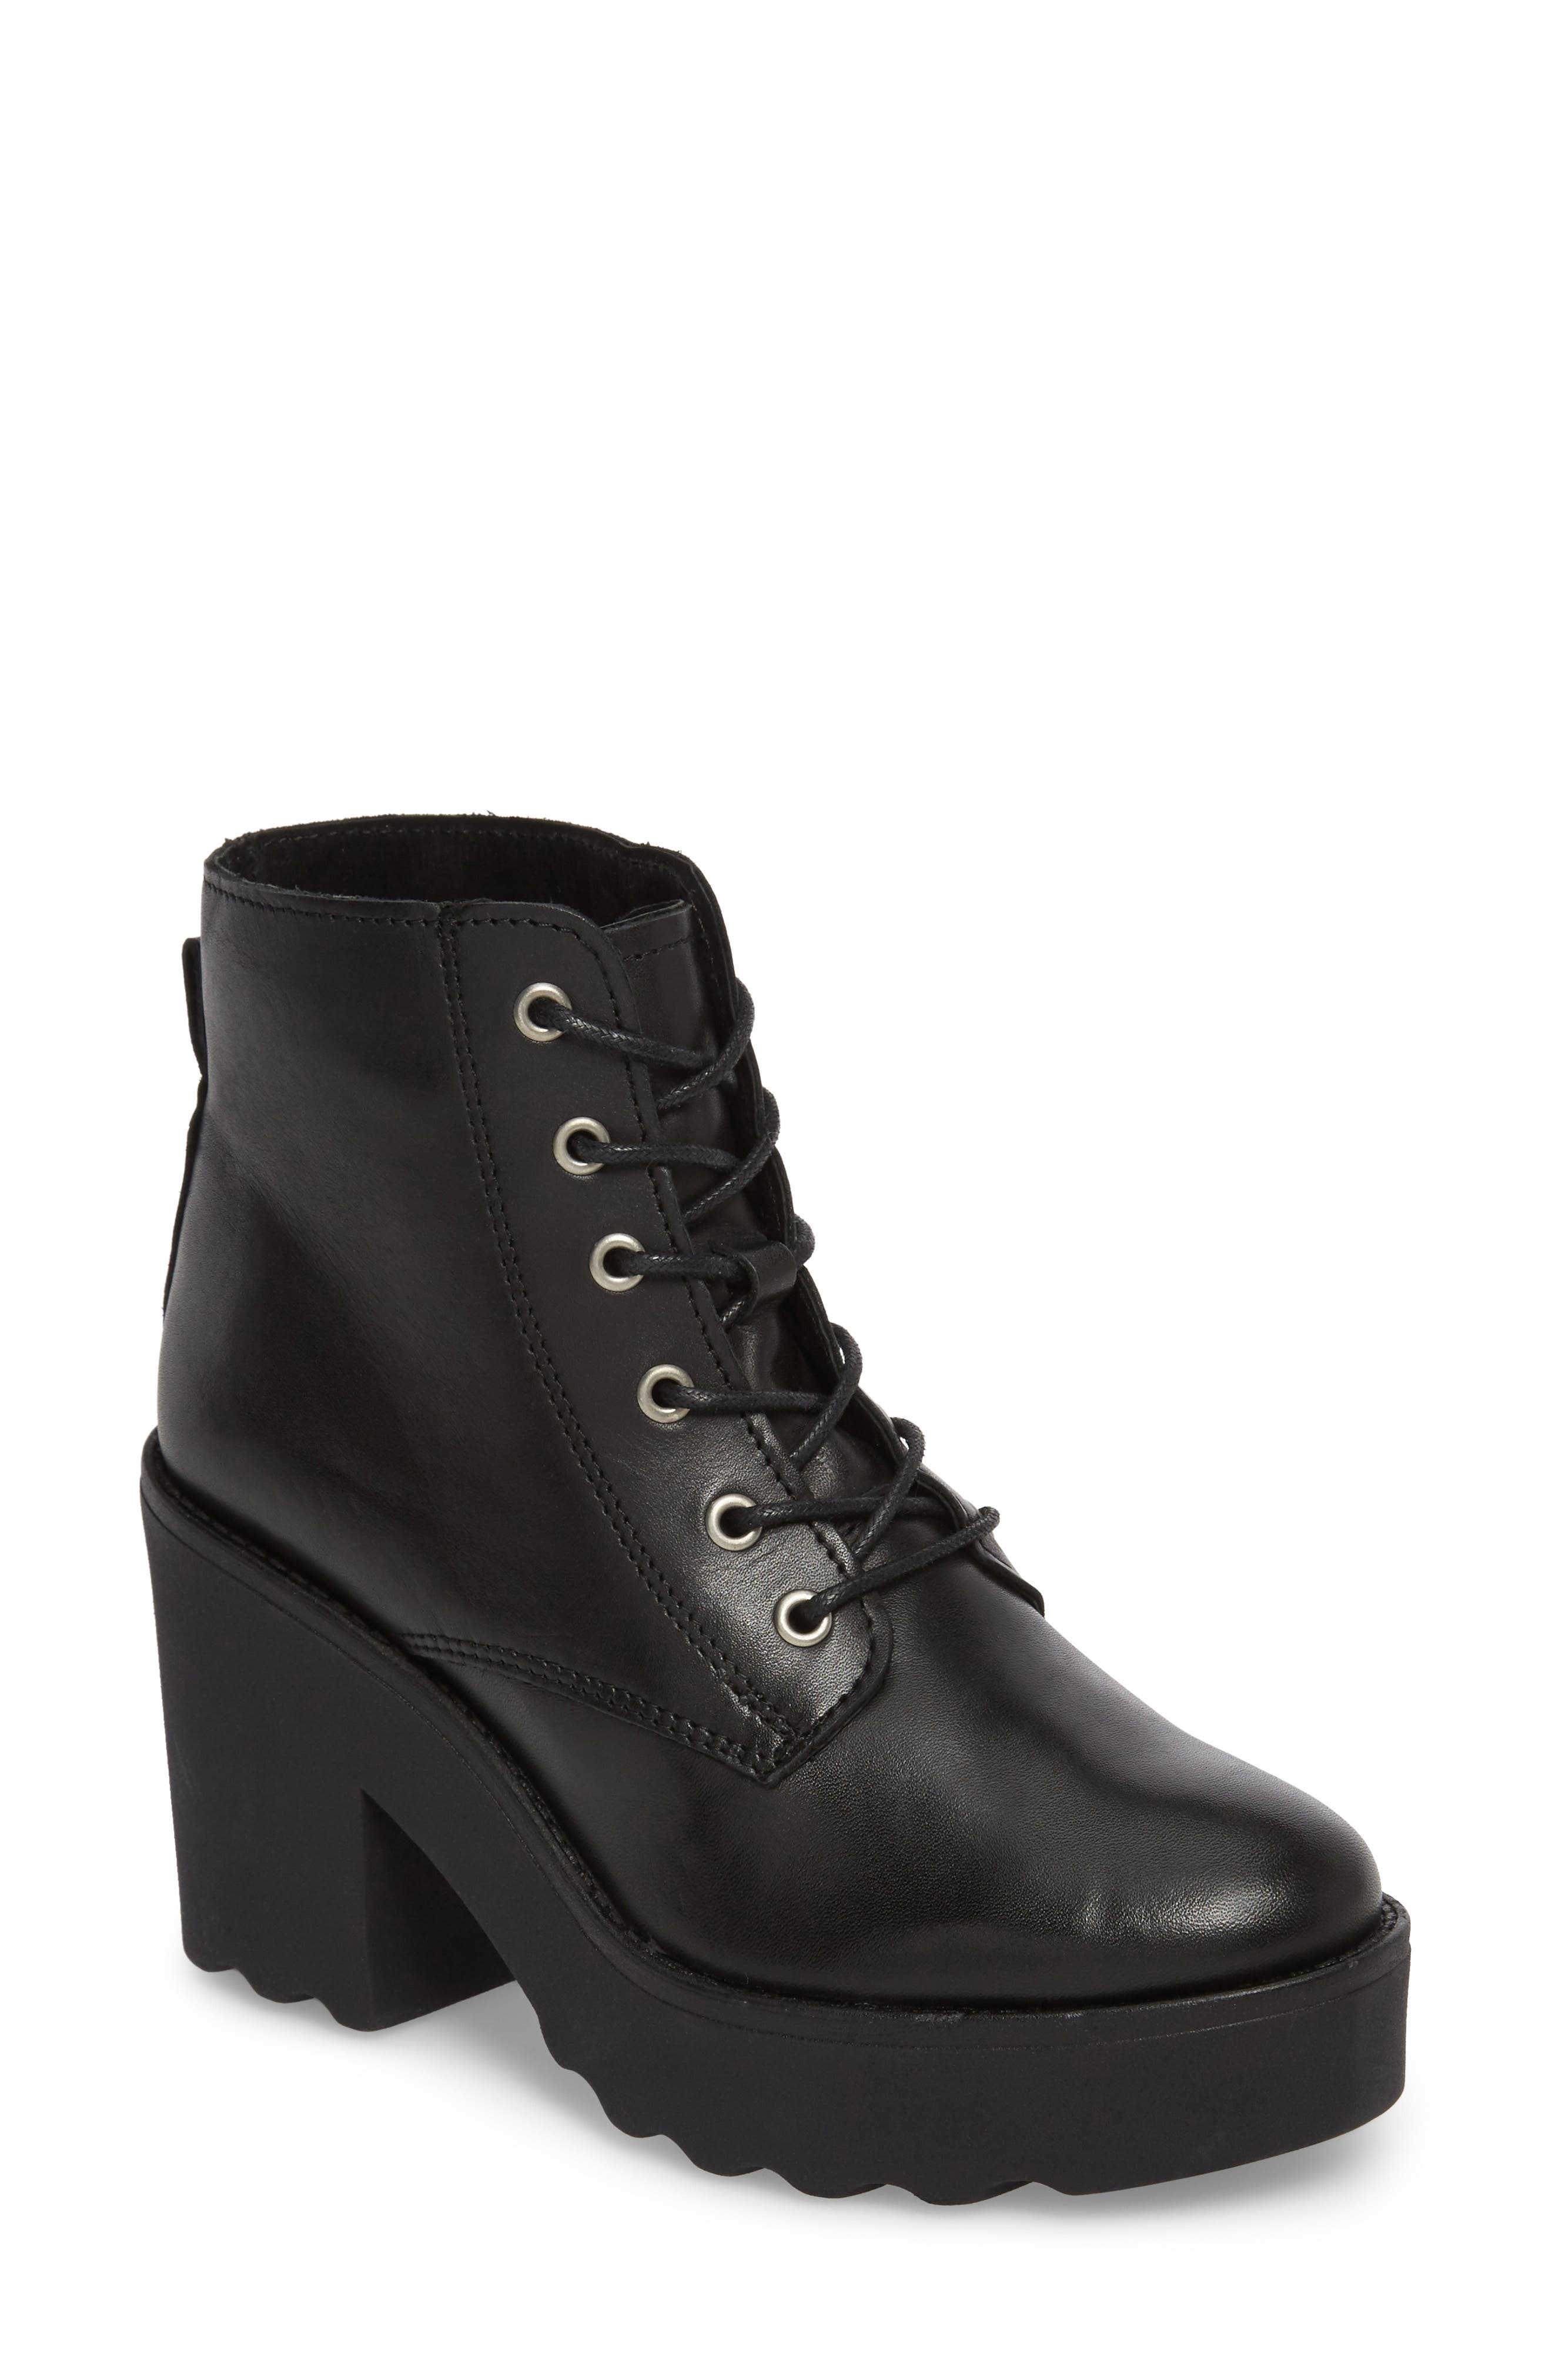 Gusto Boot,                         Main,                         color, Black Leather